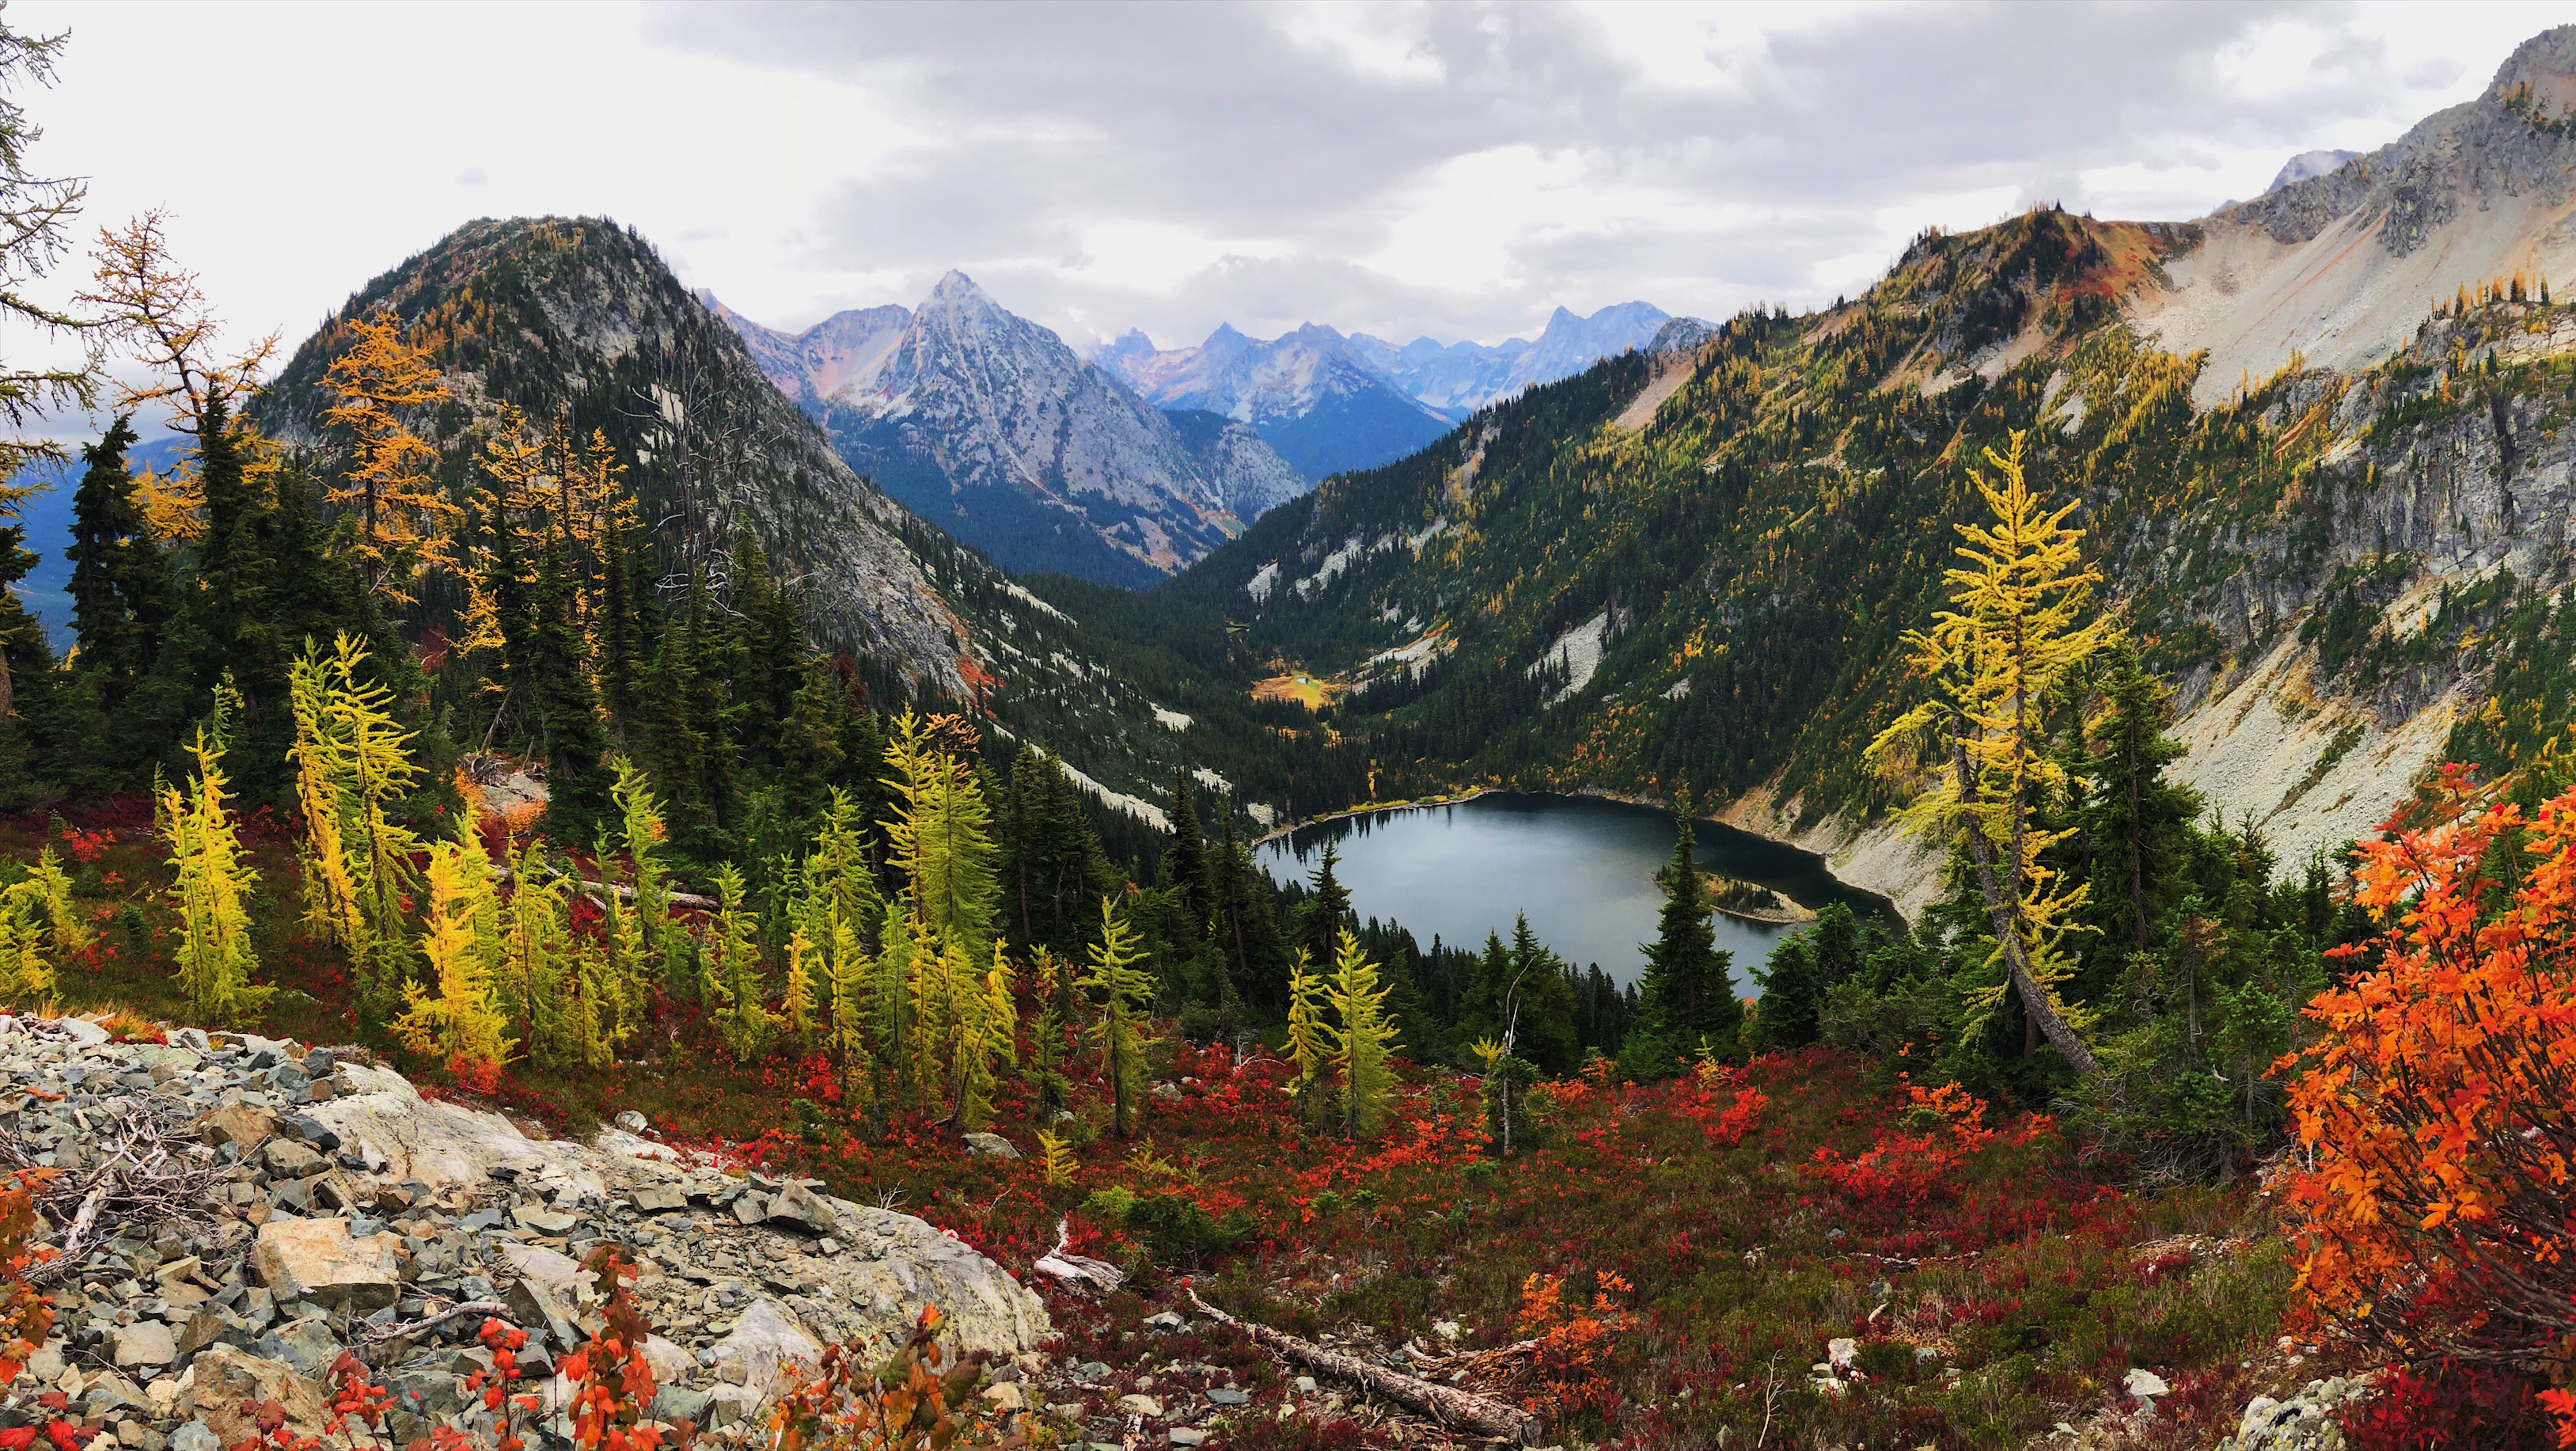 Cascade peak, alpine lake, and fall foliage at Maple Pass in the North Cascades